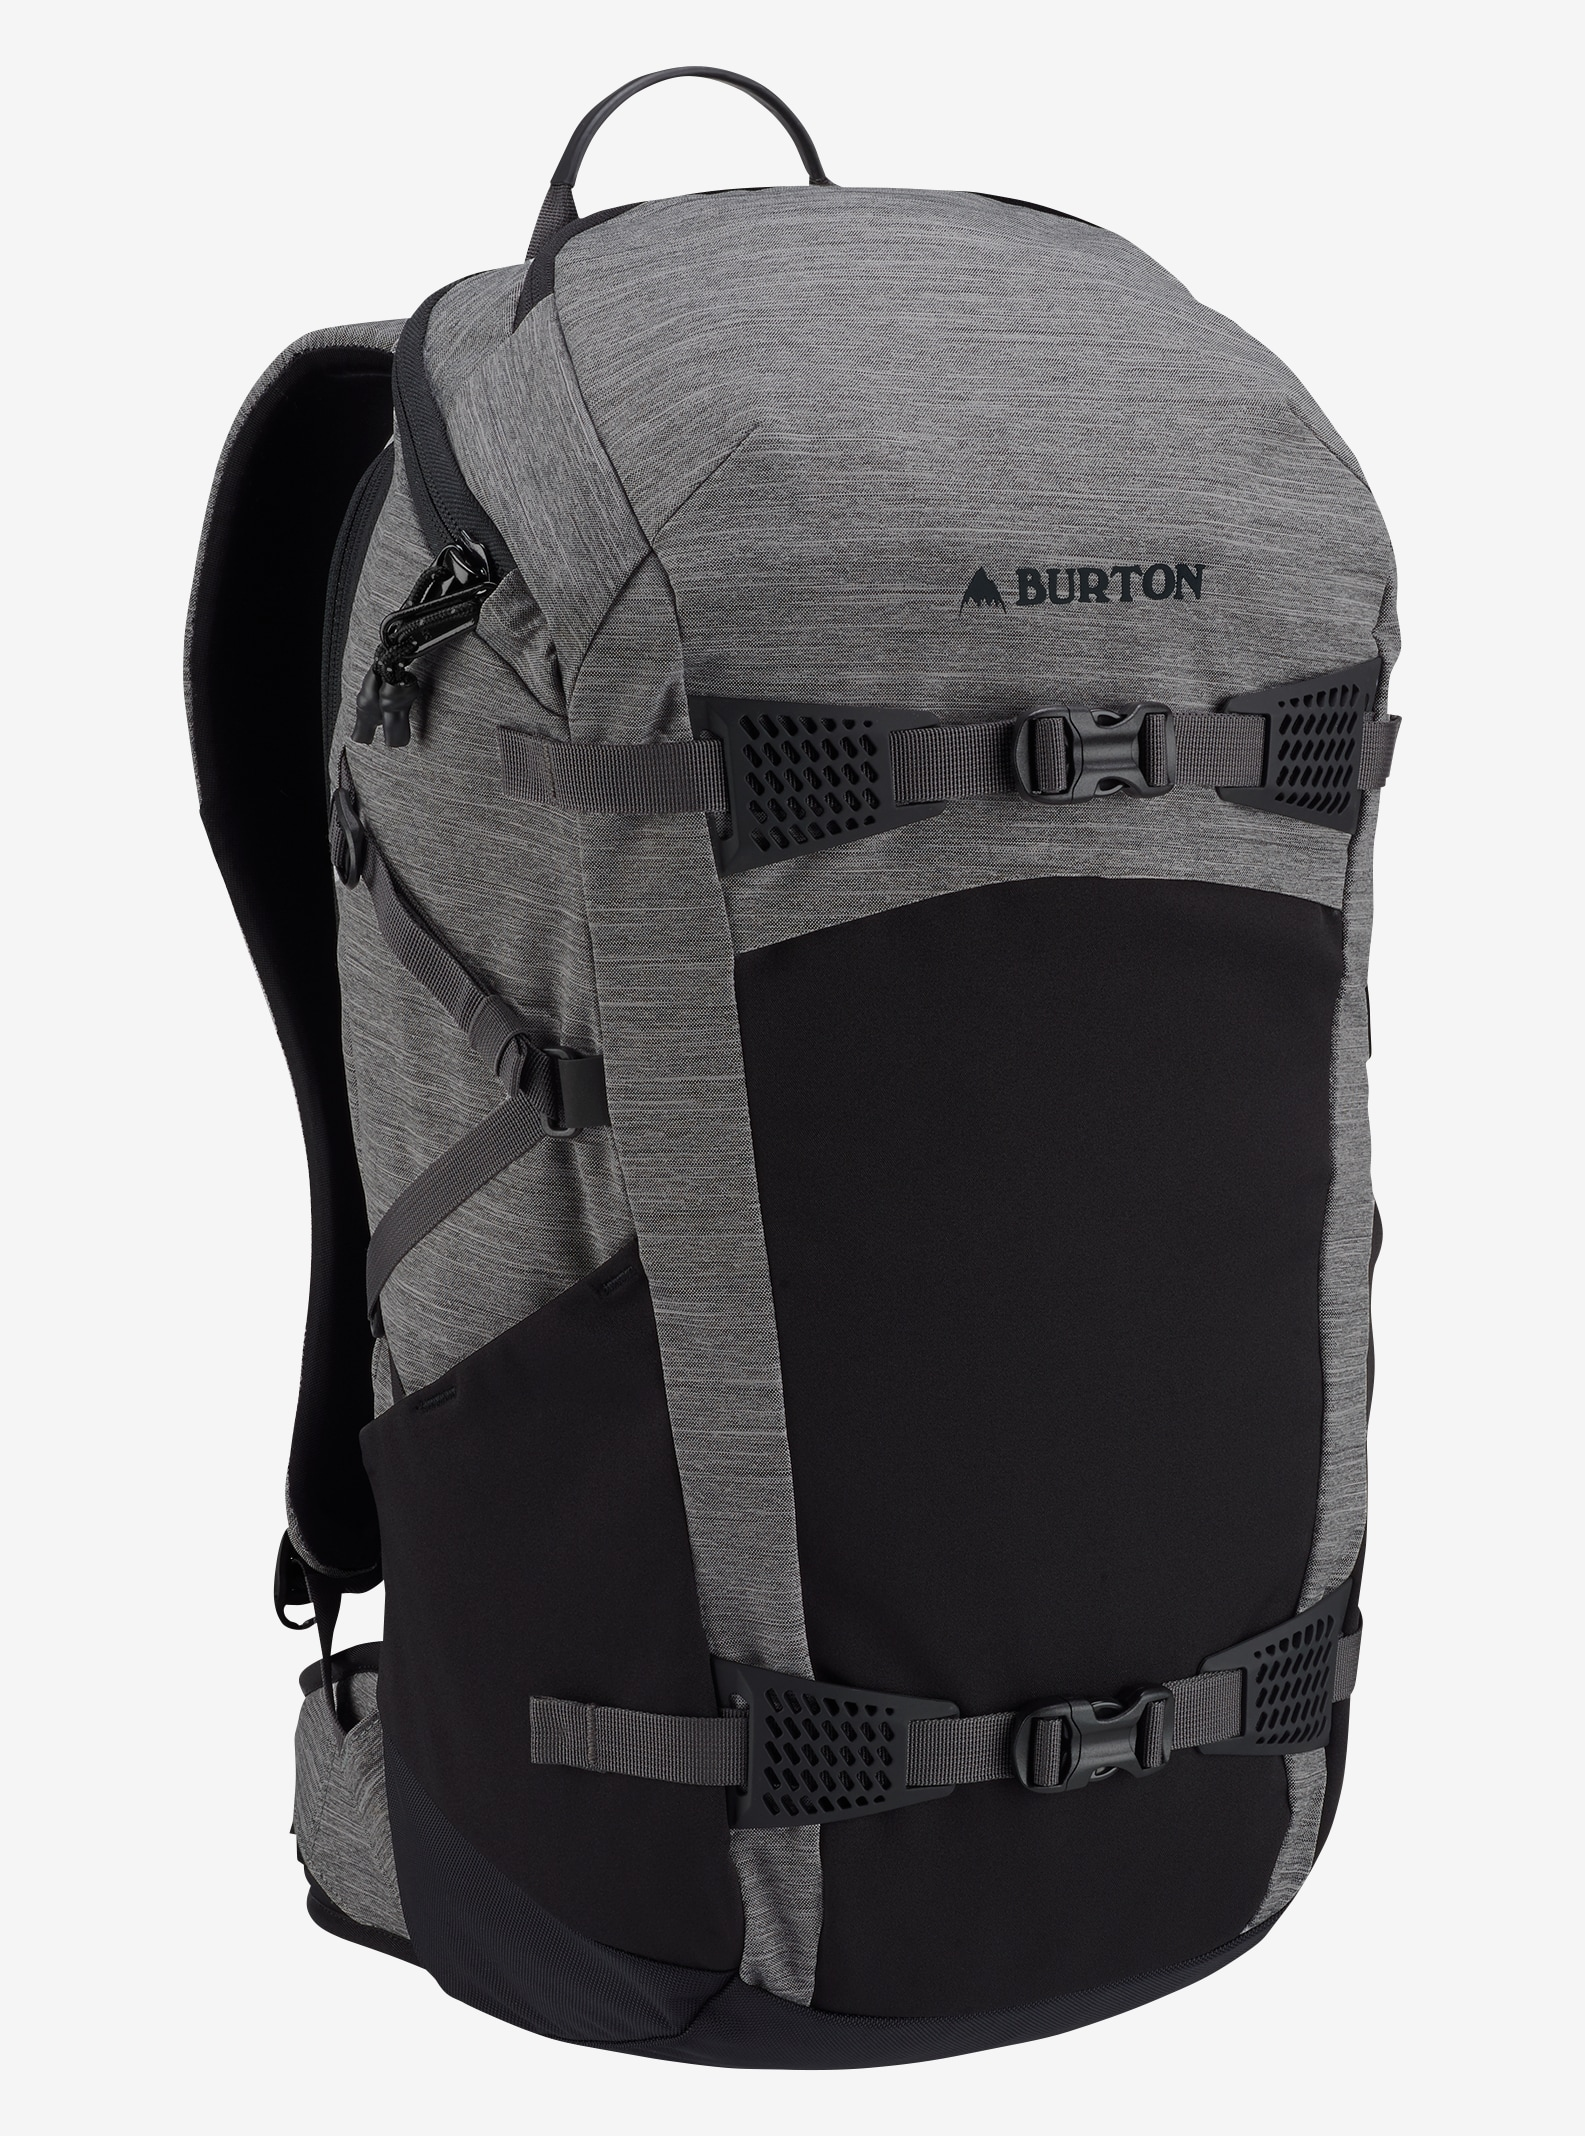 Burton Day Hiker 31L Backpack shown in Shade Heather